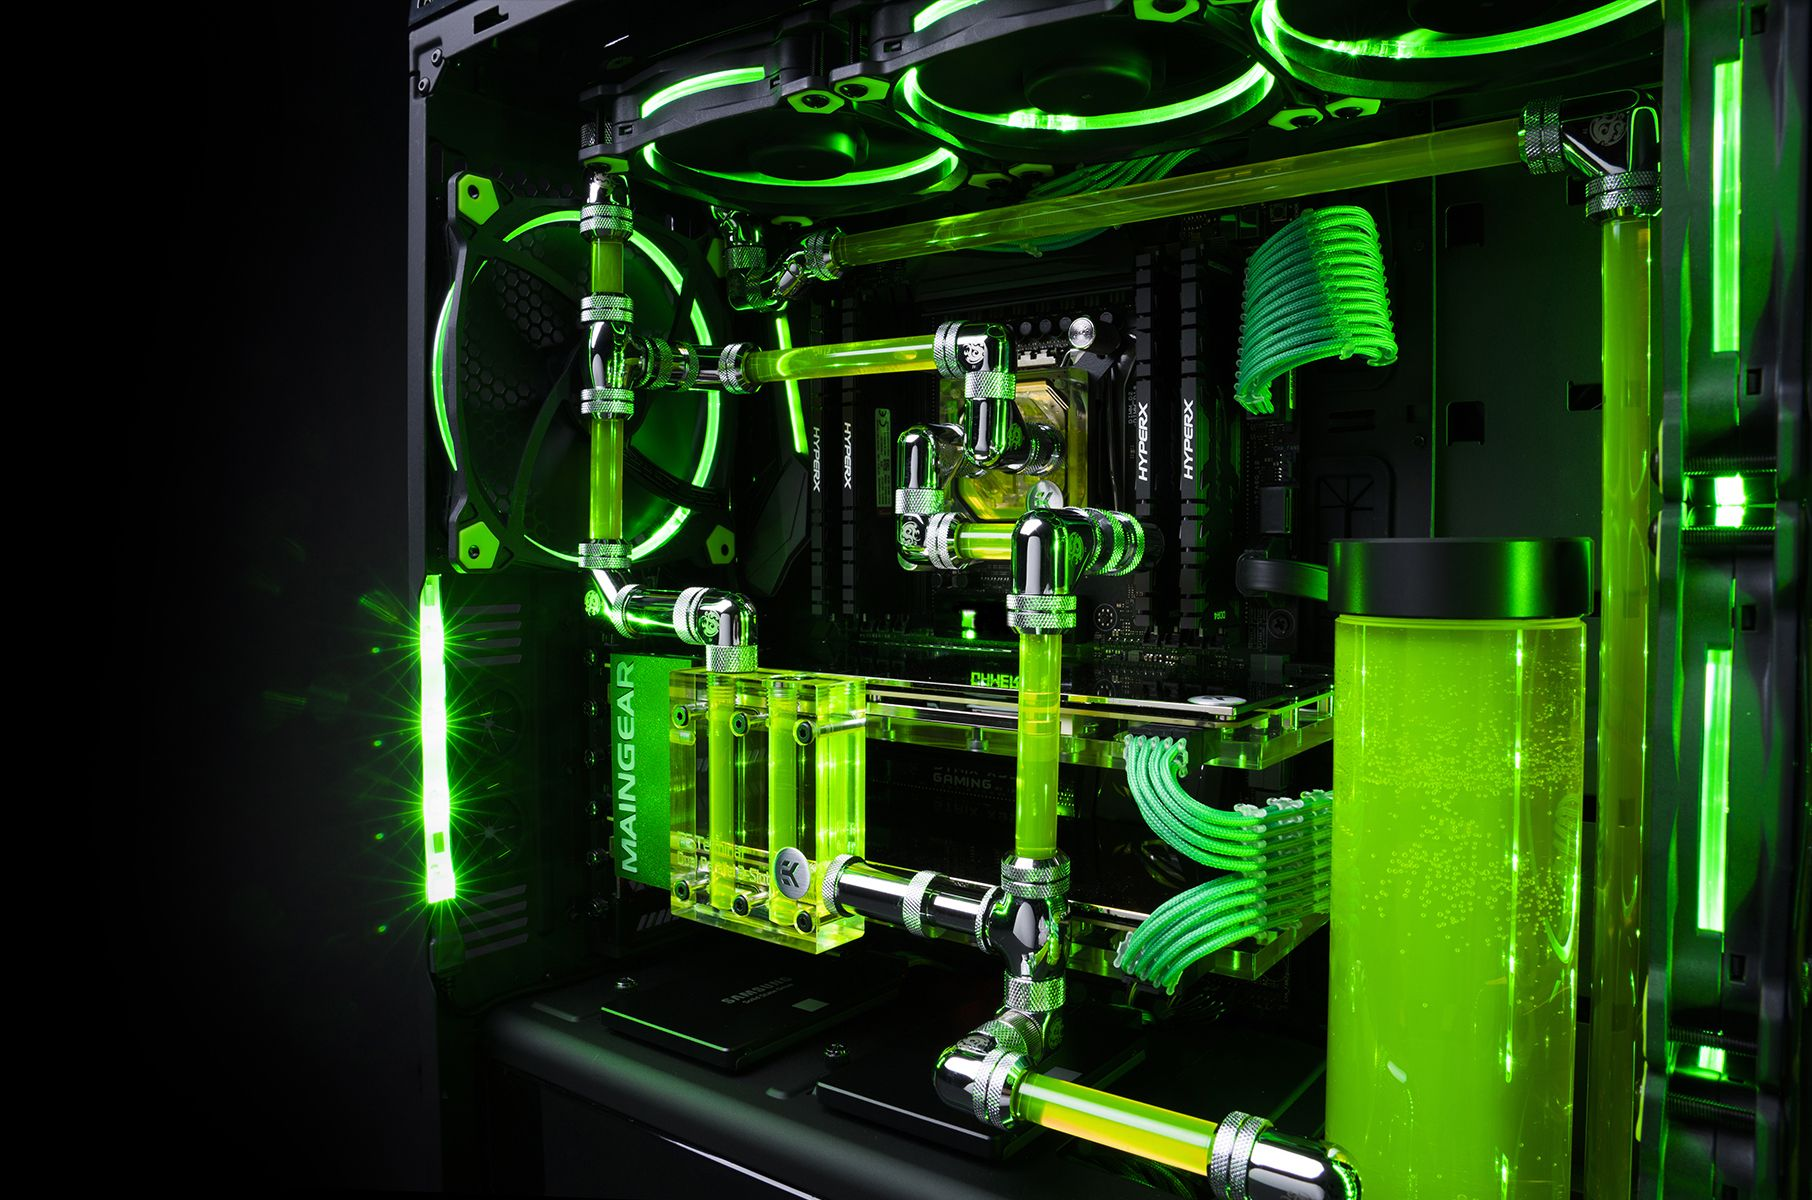 The Glowing Green Liquid In This Razer Maingear Gaming Pc Probably